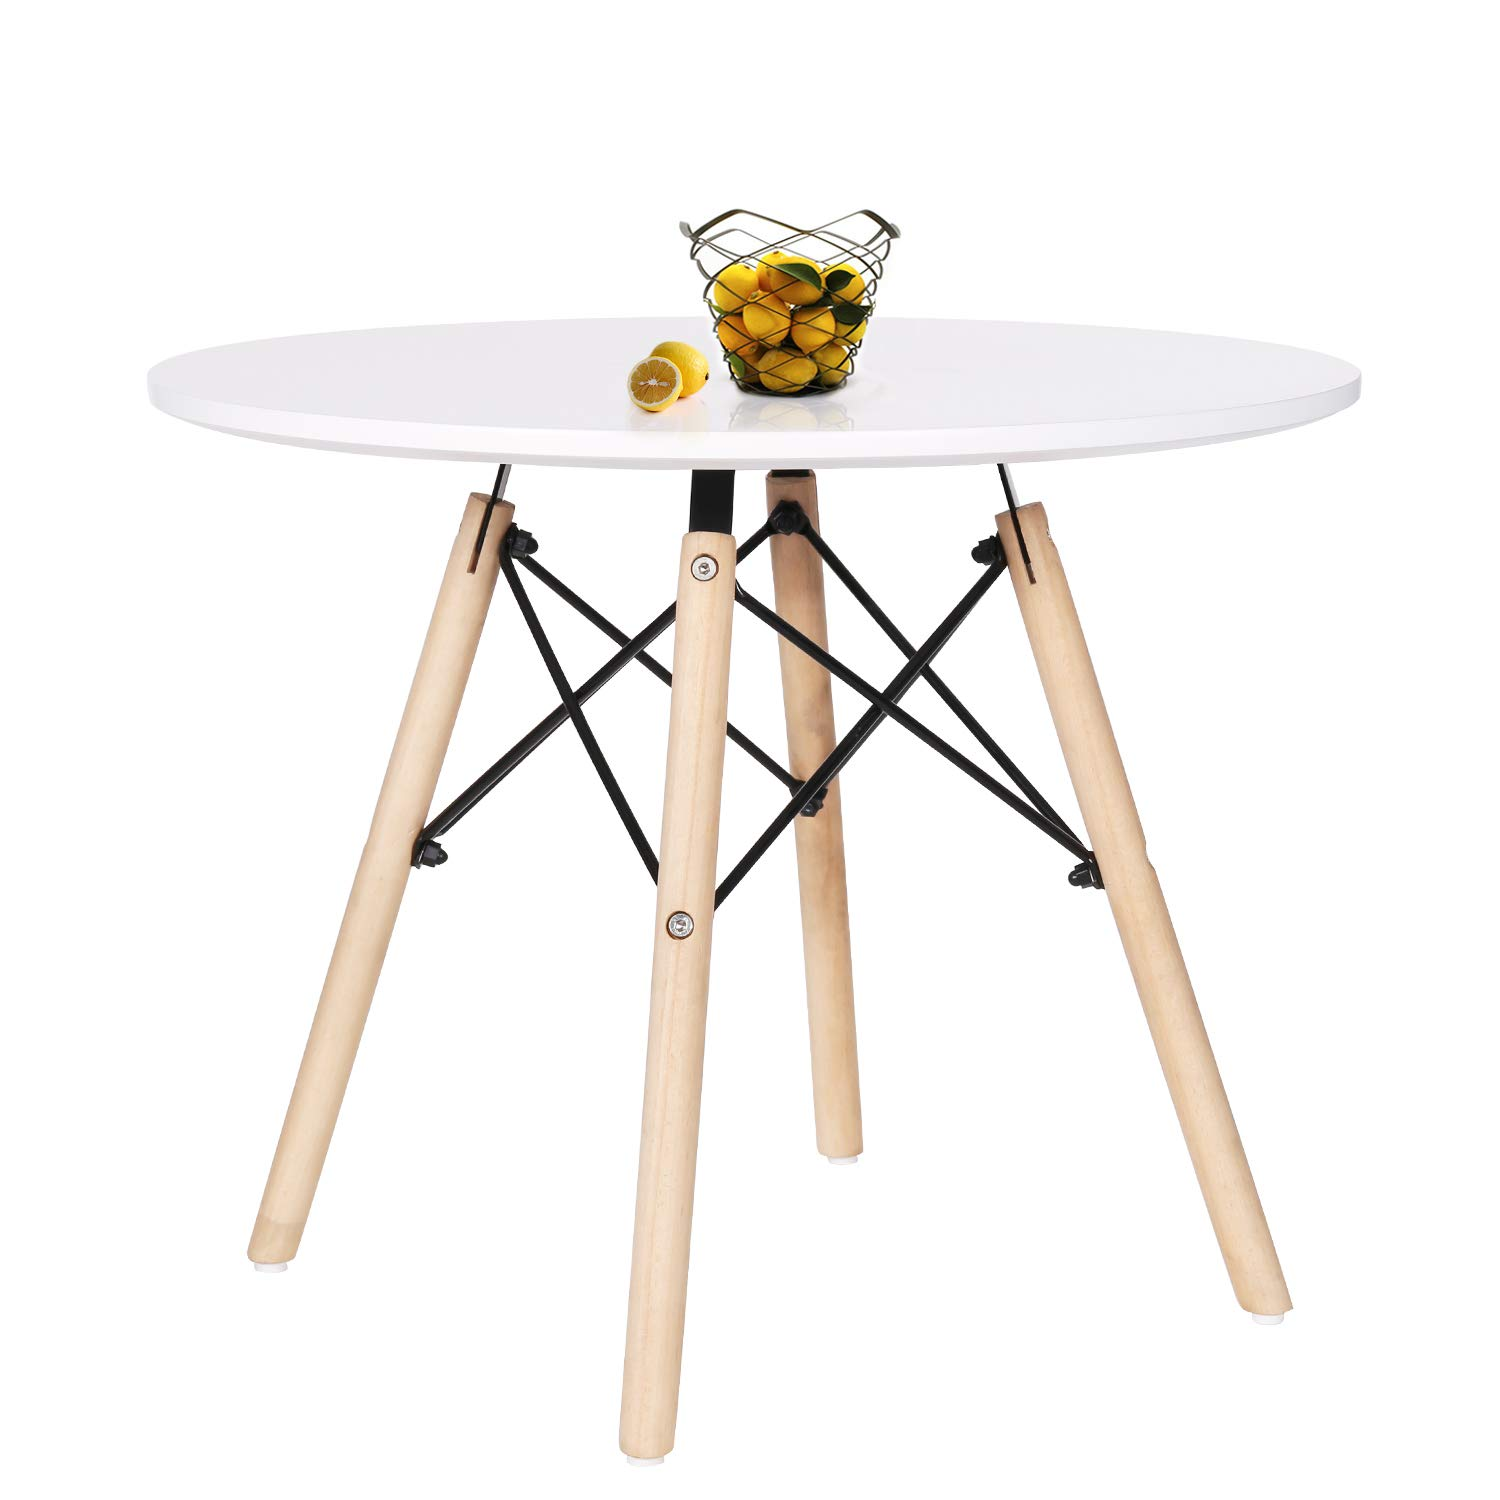 Fine Vecelo Multifunctional Round Leisure Mini Style Tables For Bedroom Playroom Dining Room White Dailytribune Chair Design For Home Dailytribuneorg